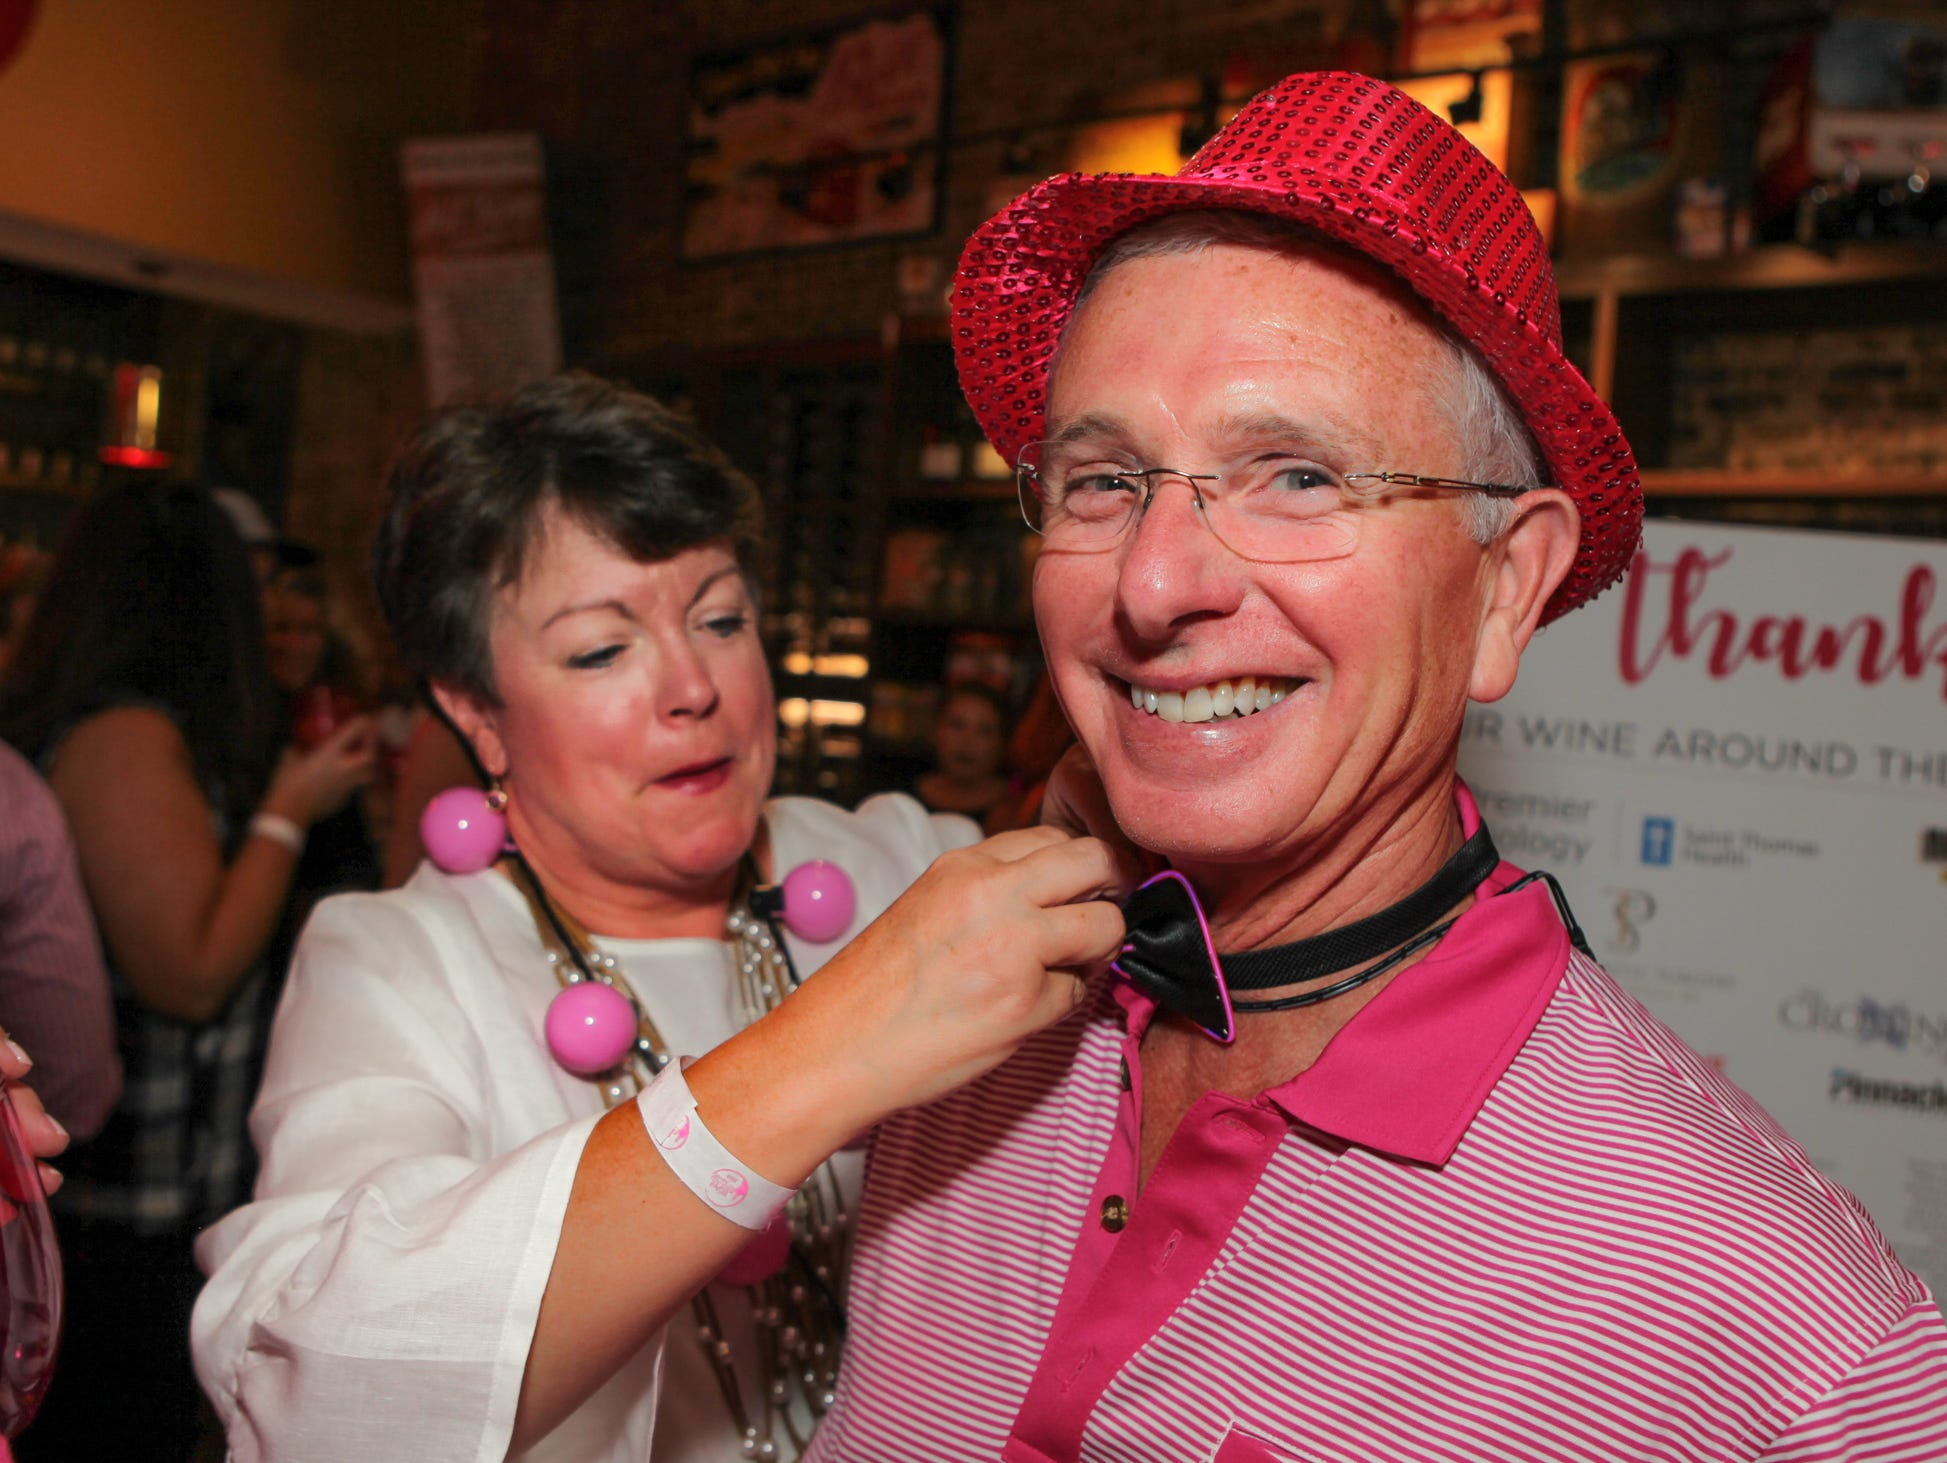 Cindy Fergusen fixes Gordon Fergusen's bow tie at Wine Around the Square, Saint Thomas Rutherford Foundation's Power of Pink fundraiser to fight breast cancer, on Saturday, Sept. 15, 2018.